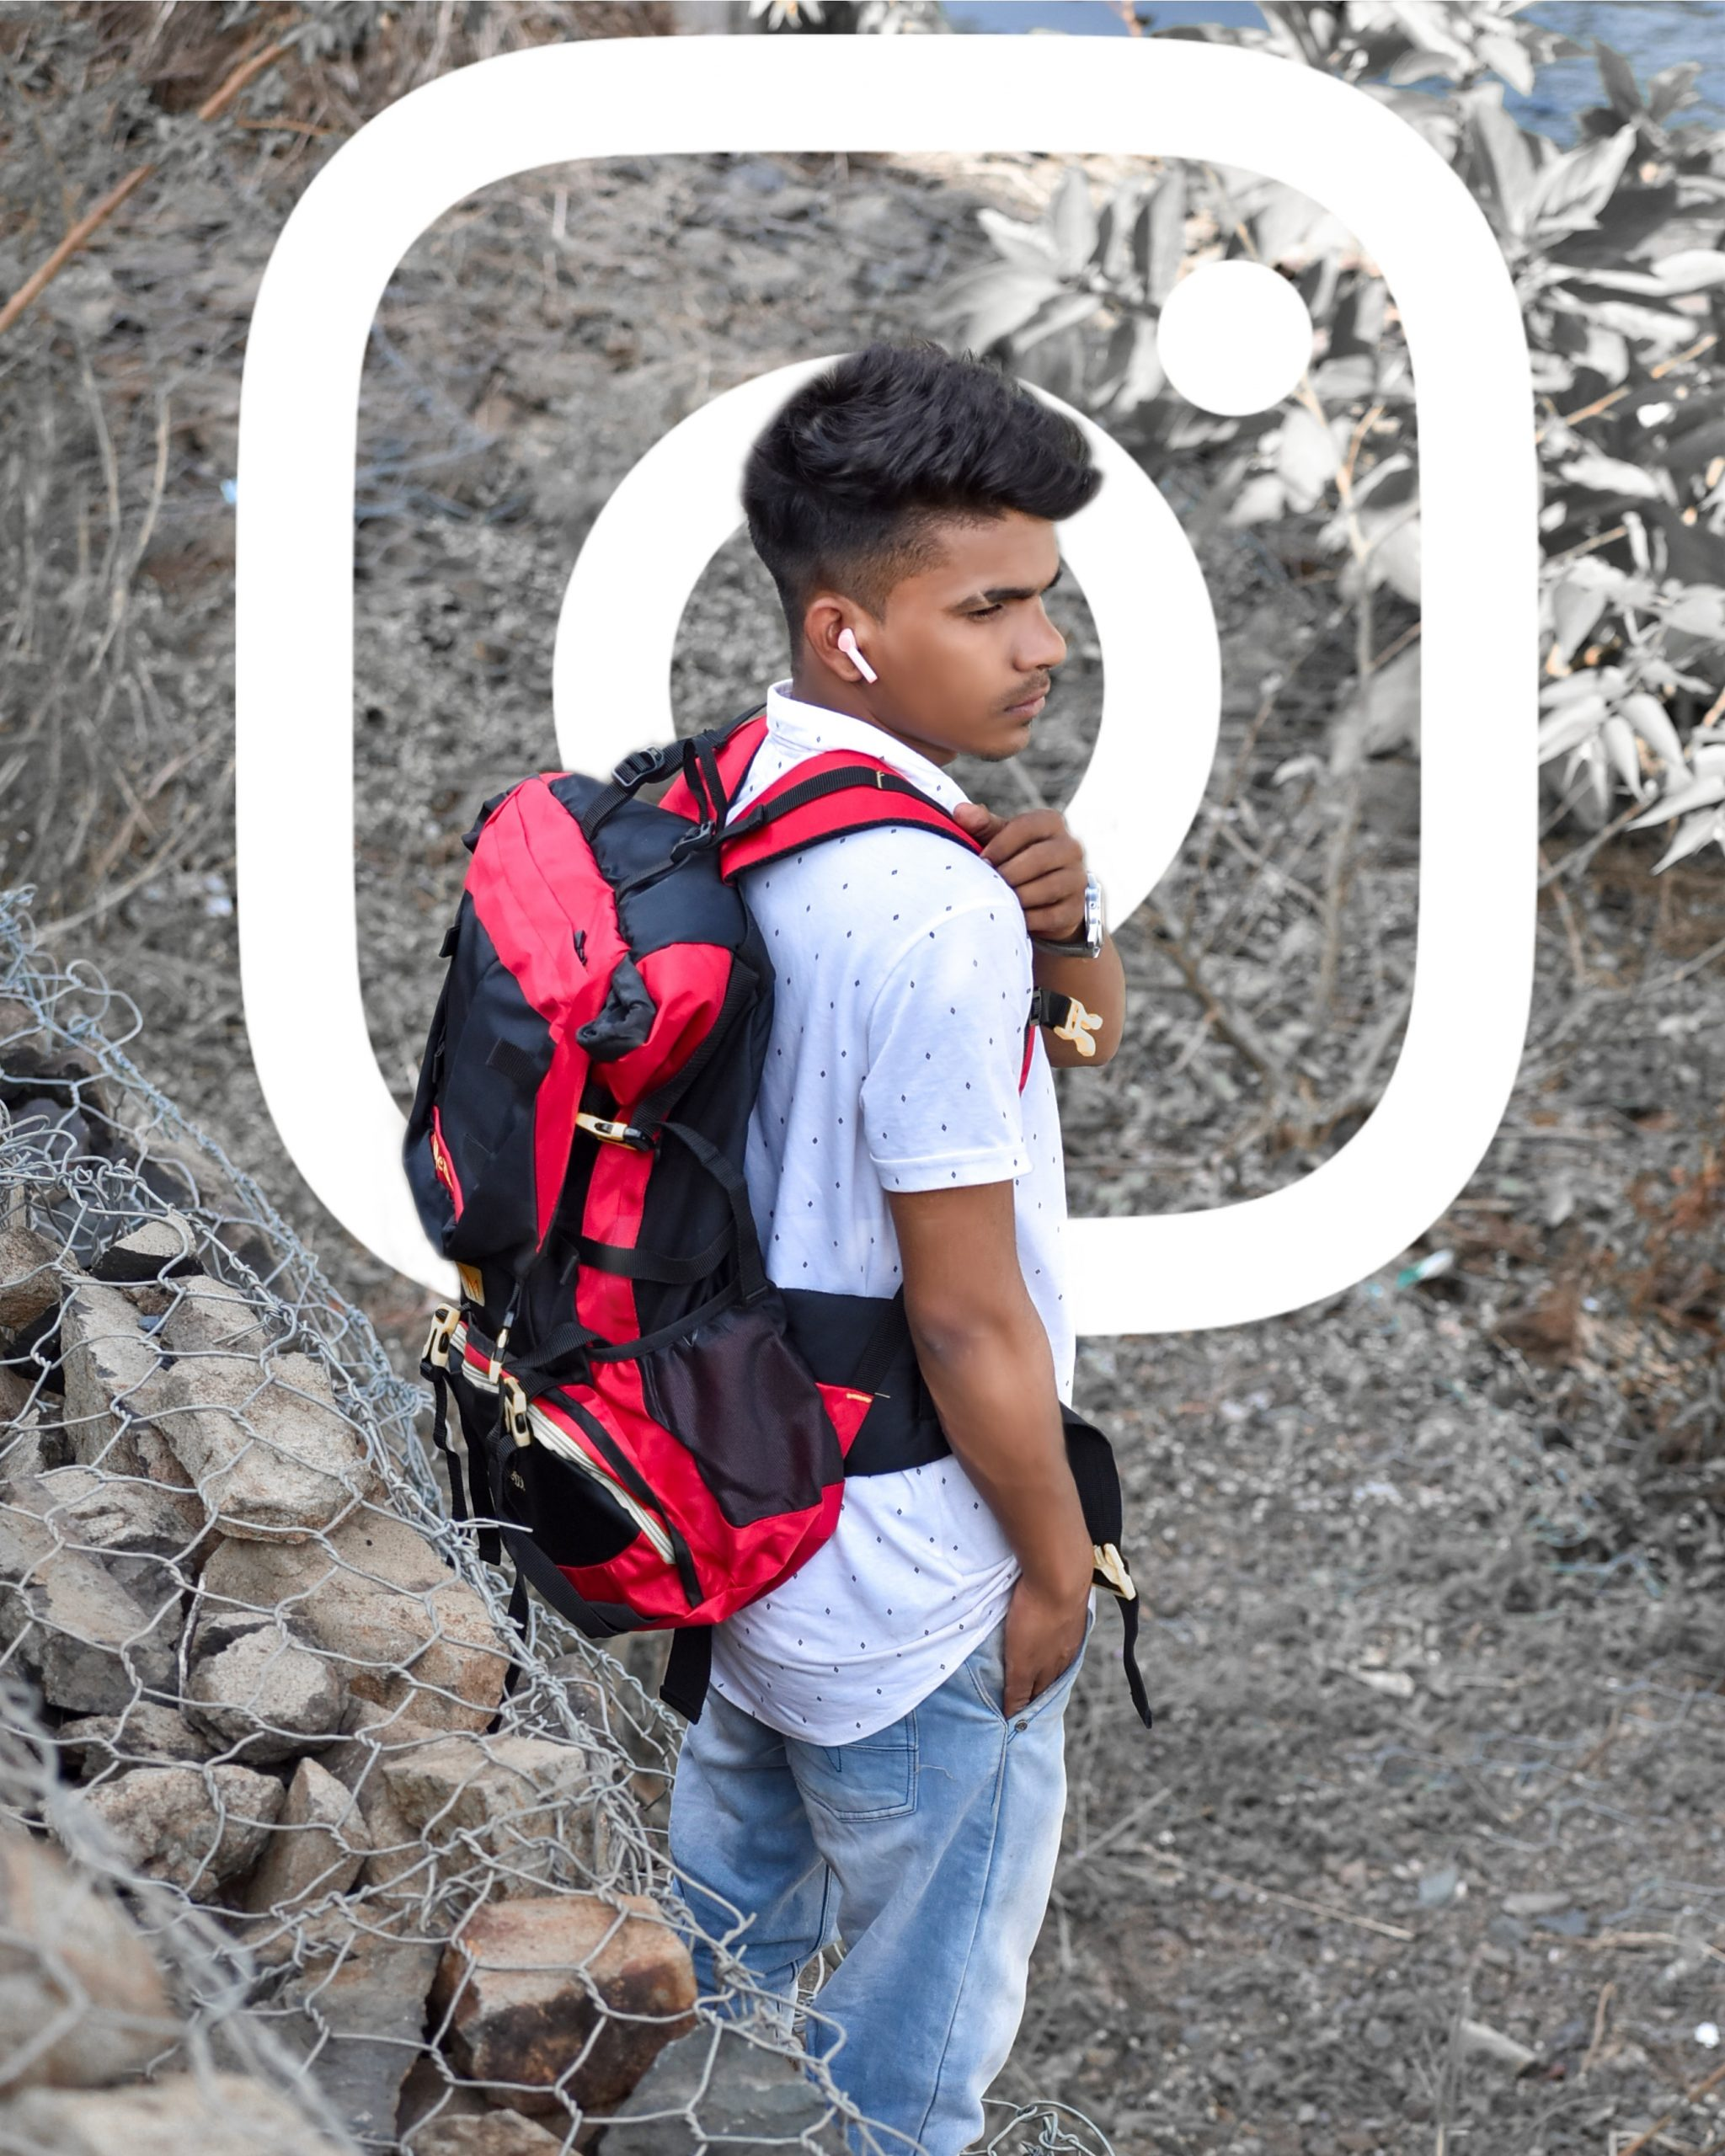 A boy with backpack